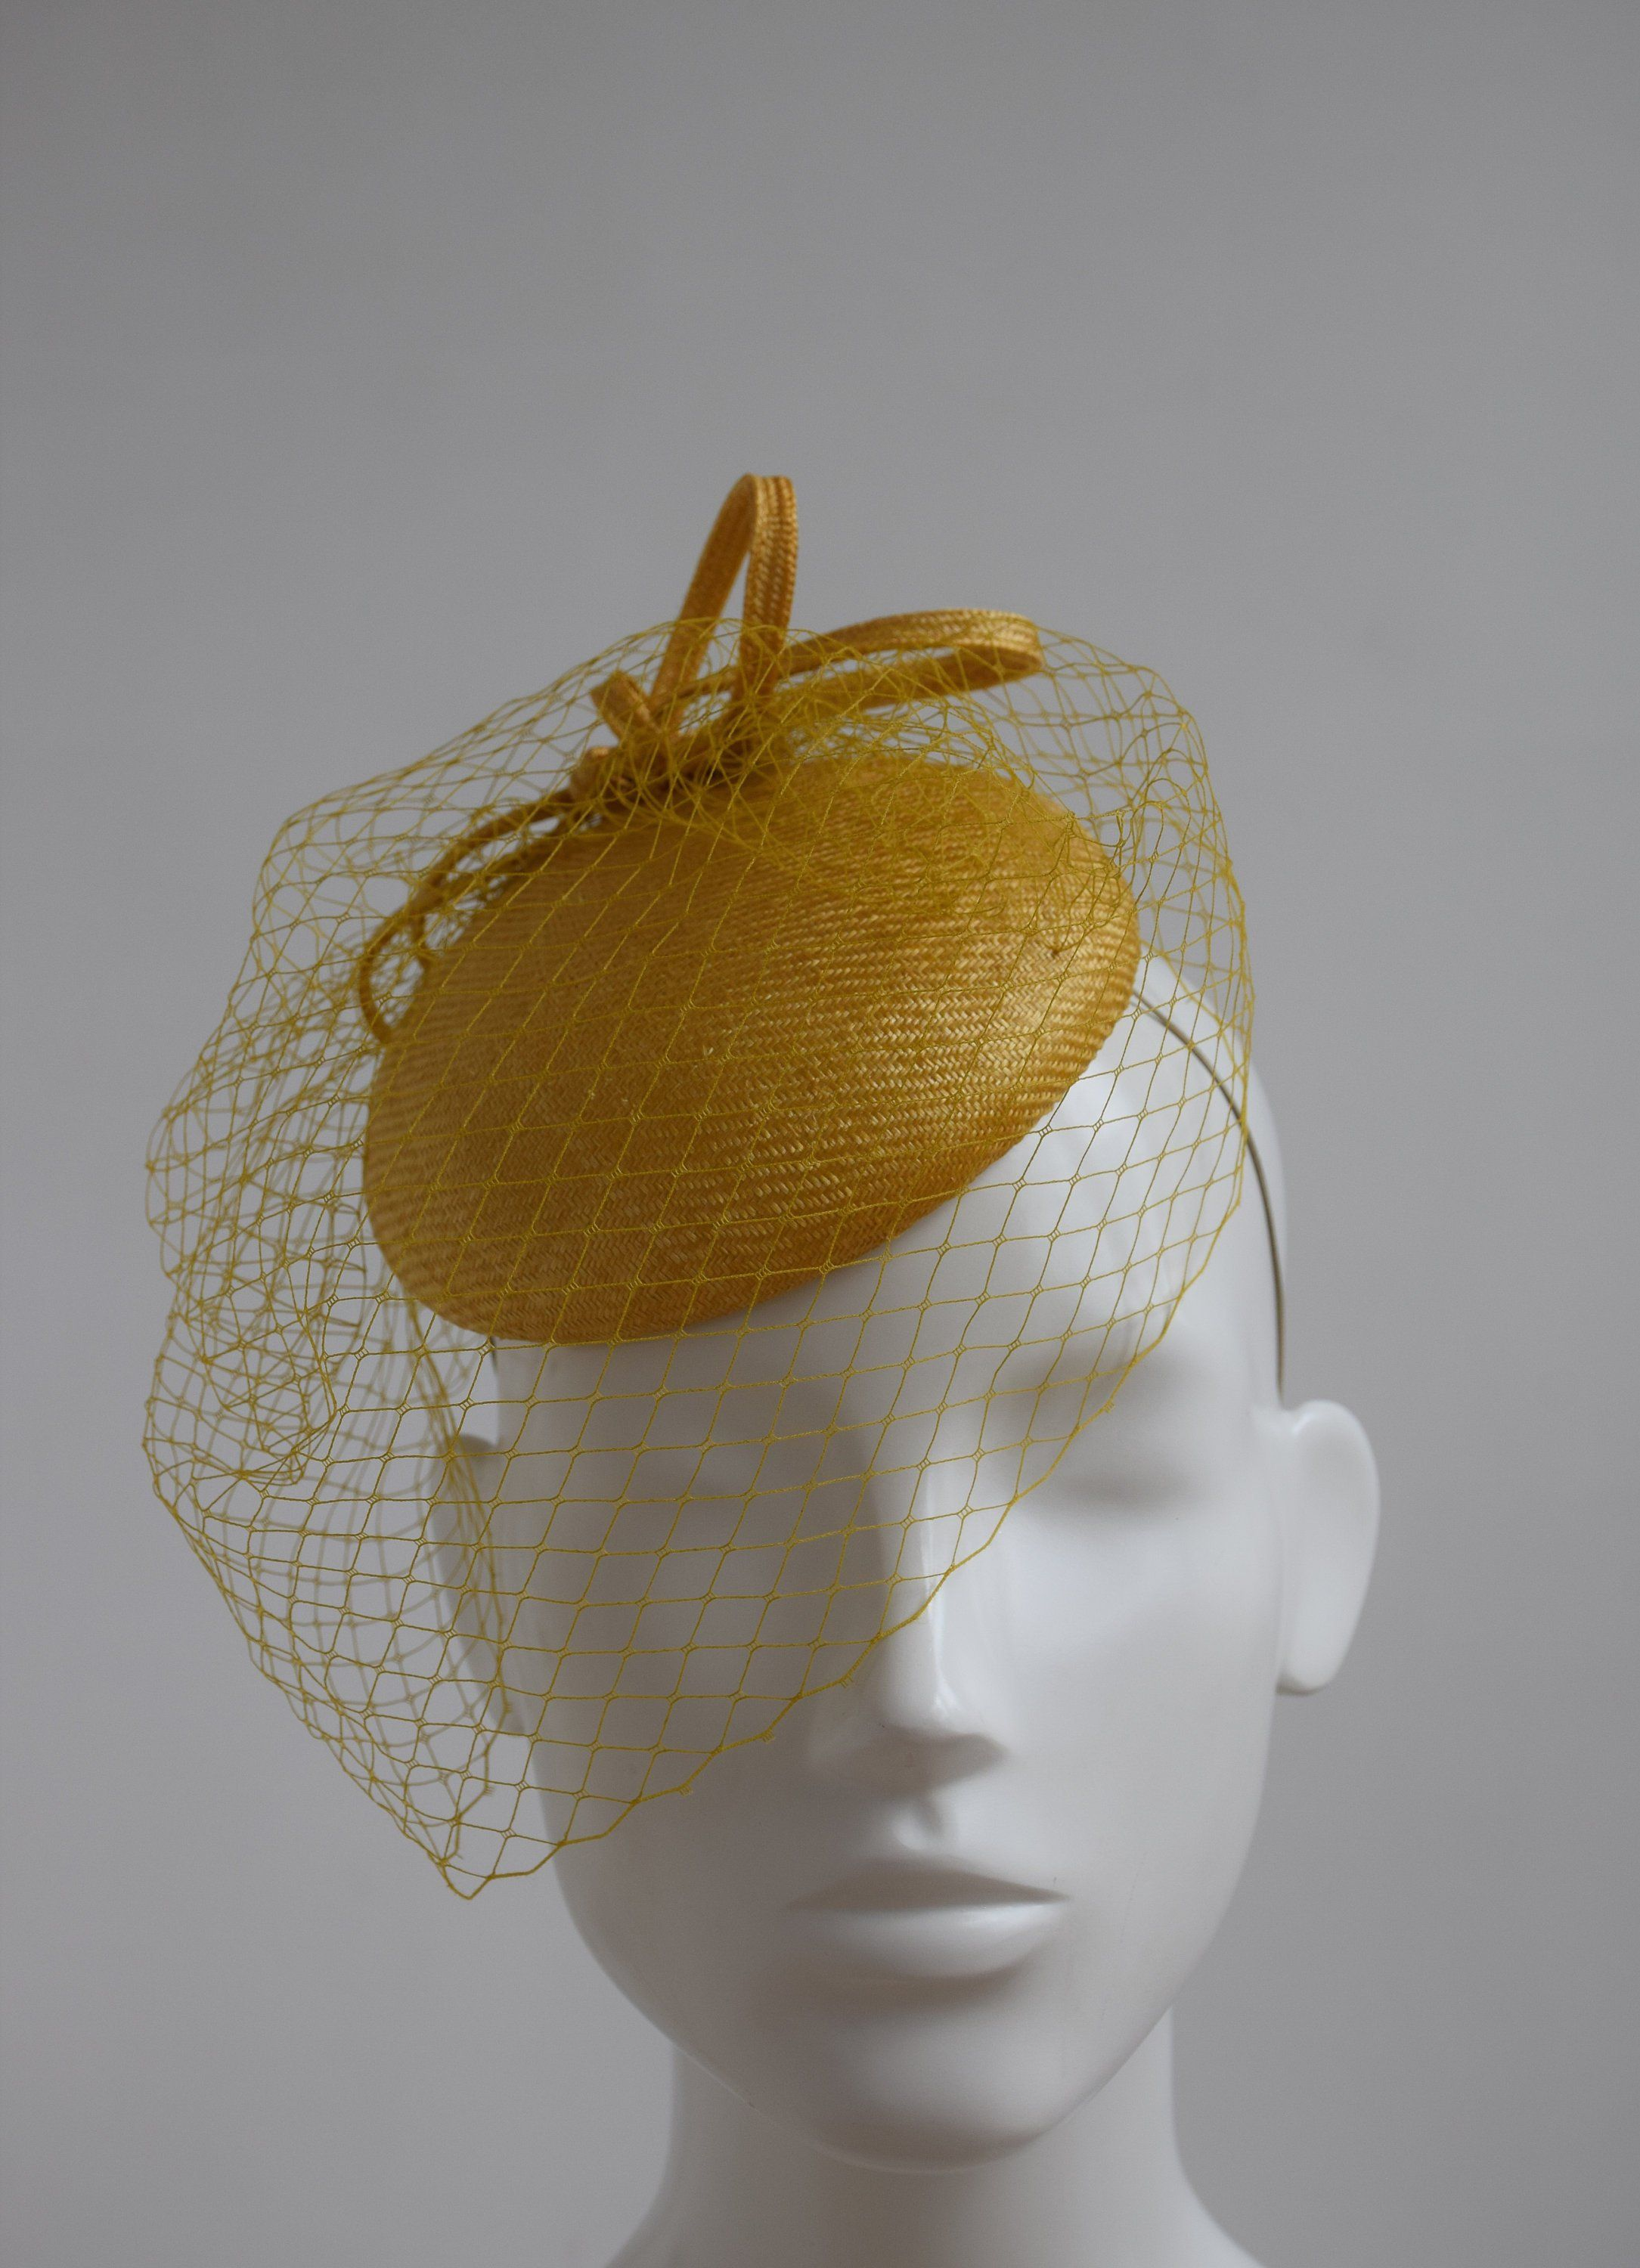 Mustard Yellow Wedding Hat - Mustard Yellow Fascinator - Mustard Yellow  Straw Headpiece - Mustard Pillbox Hat - Dijon Mustard Cocktail Hat by ... 5c4ceea230d